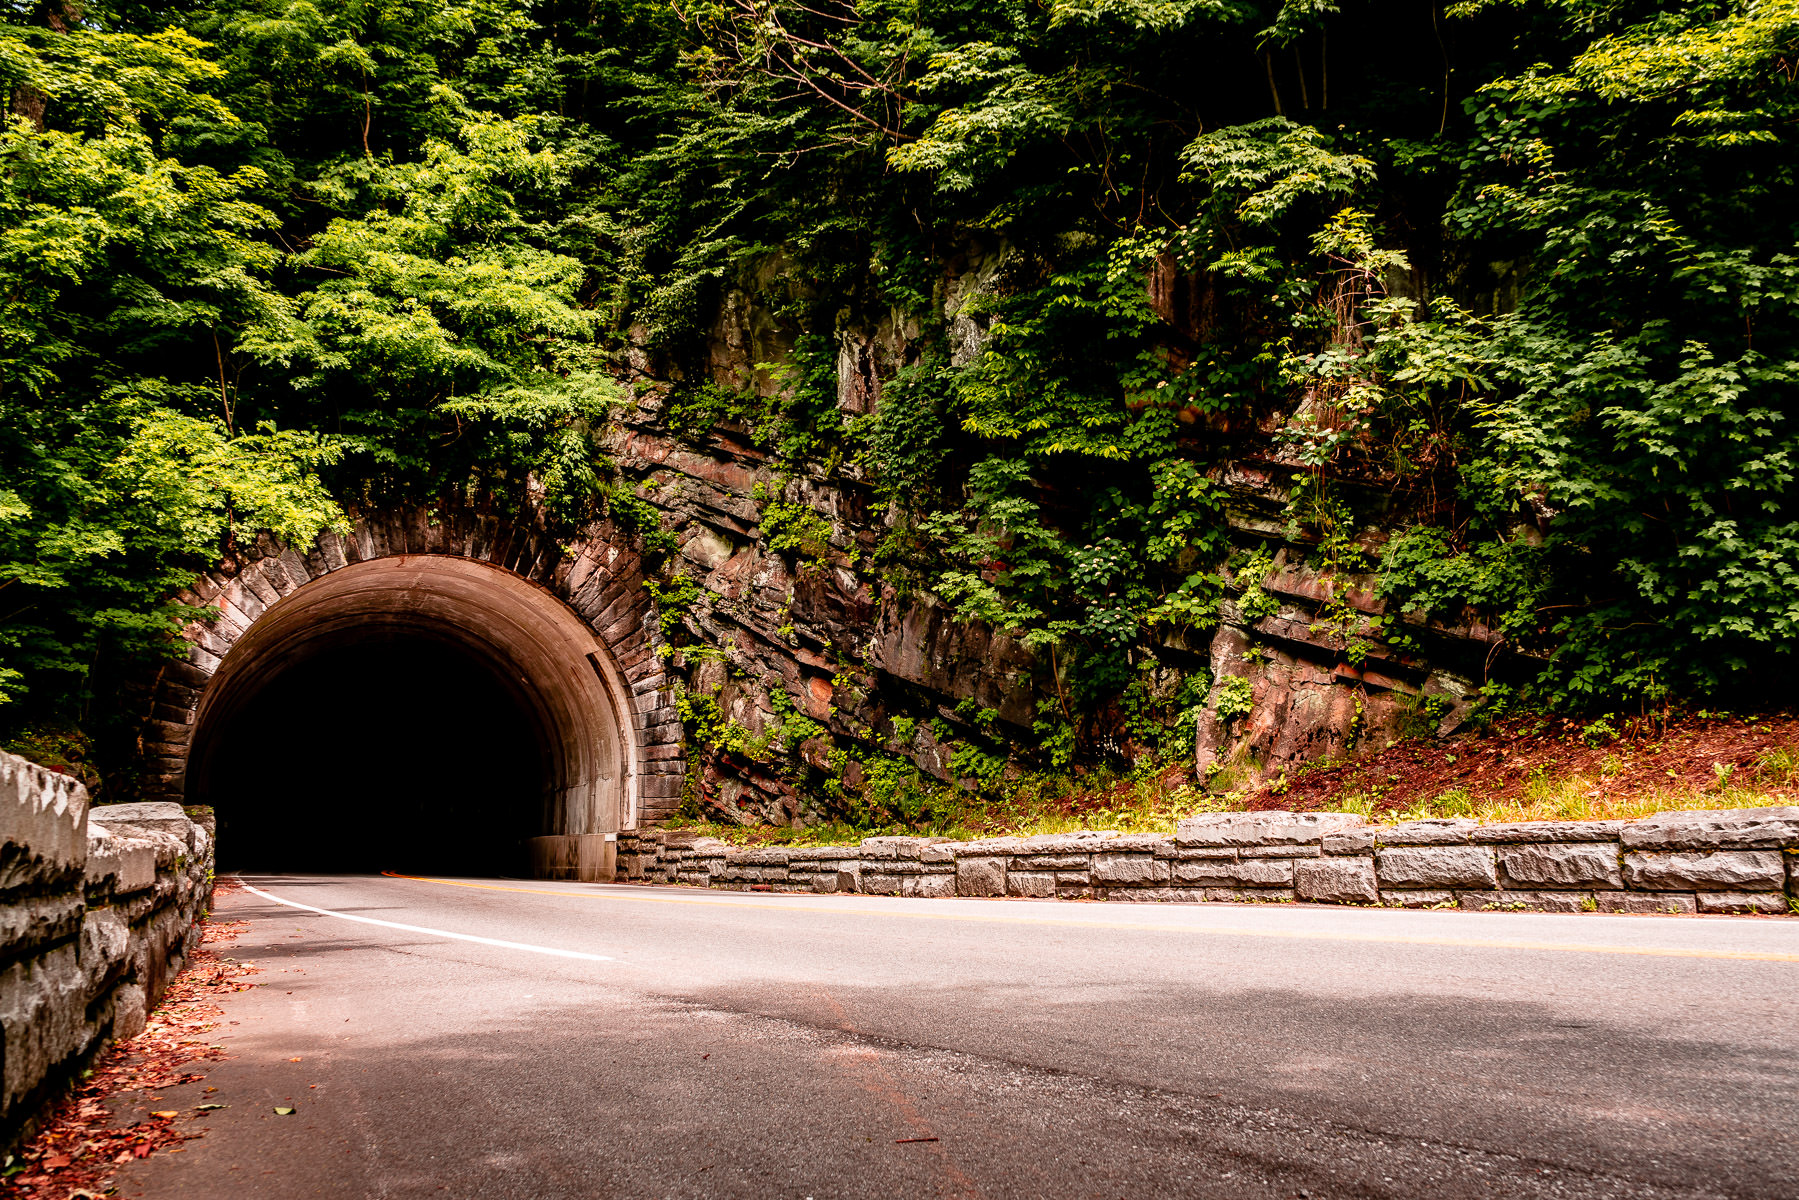 The entrance to a tunnel in the Great Smoky Mountains National Park, Tennessee.